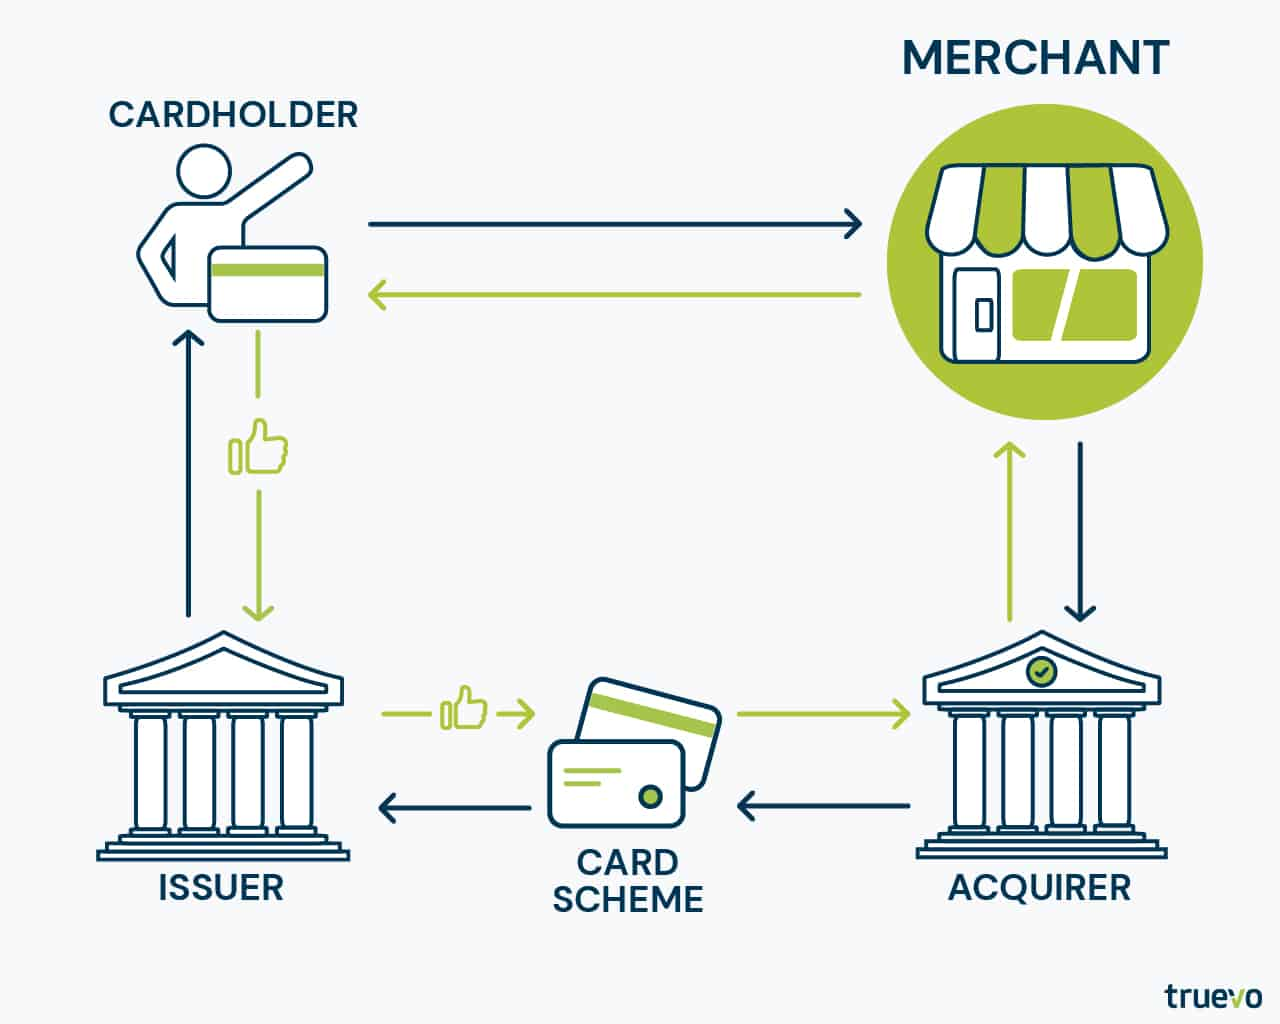 merchant within the basic payment process